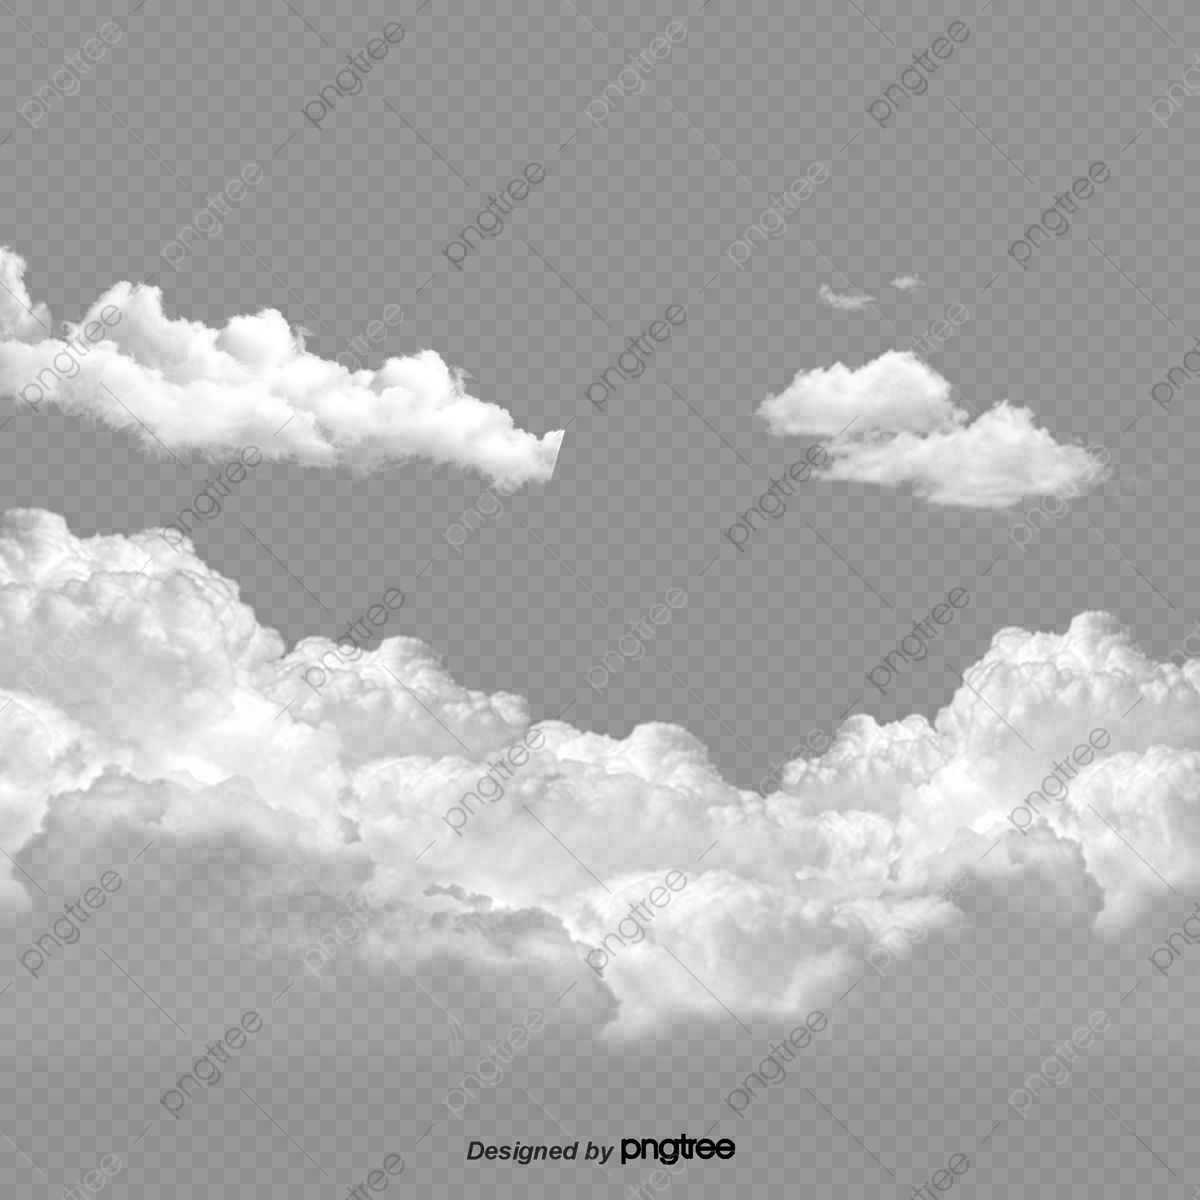 White Cloud Realistic Cloud Cloud Cloud Flaky Clouds Realism Png Transparen In 2020 Vintage Rose Tattoos Black And White Posters Graphic Design Background Templates